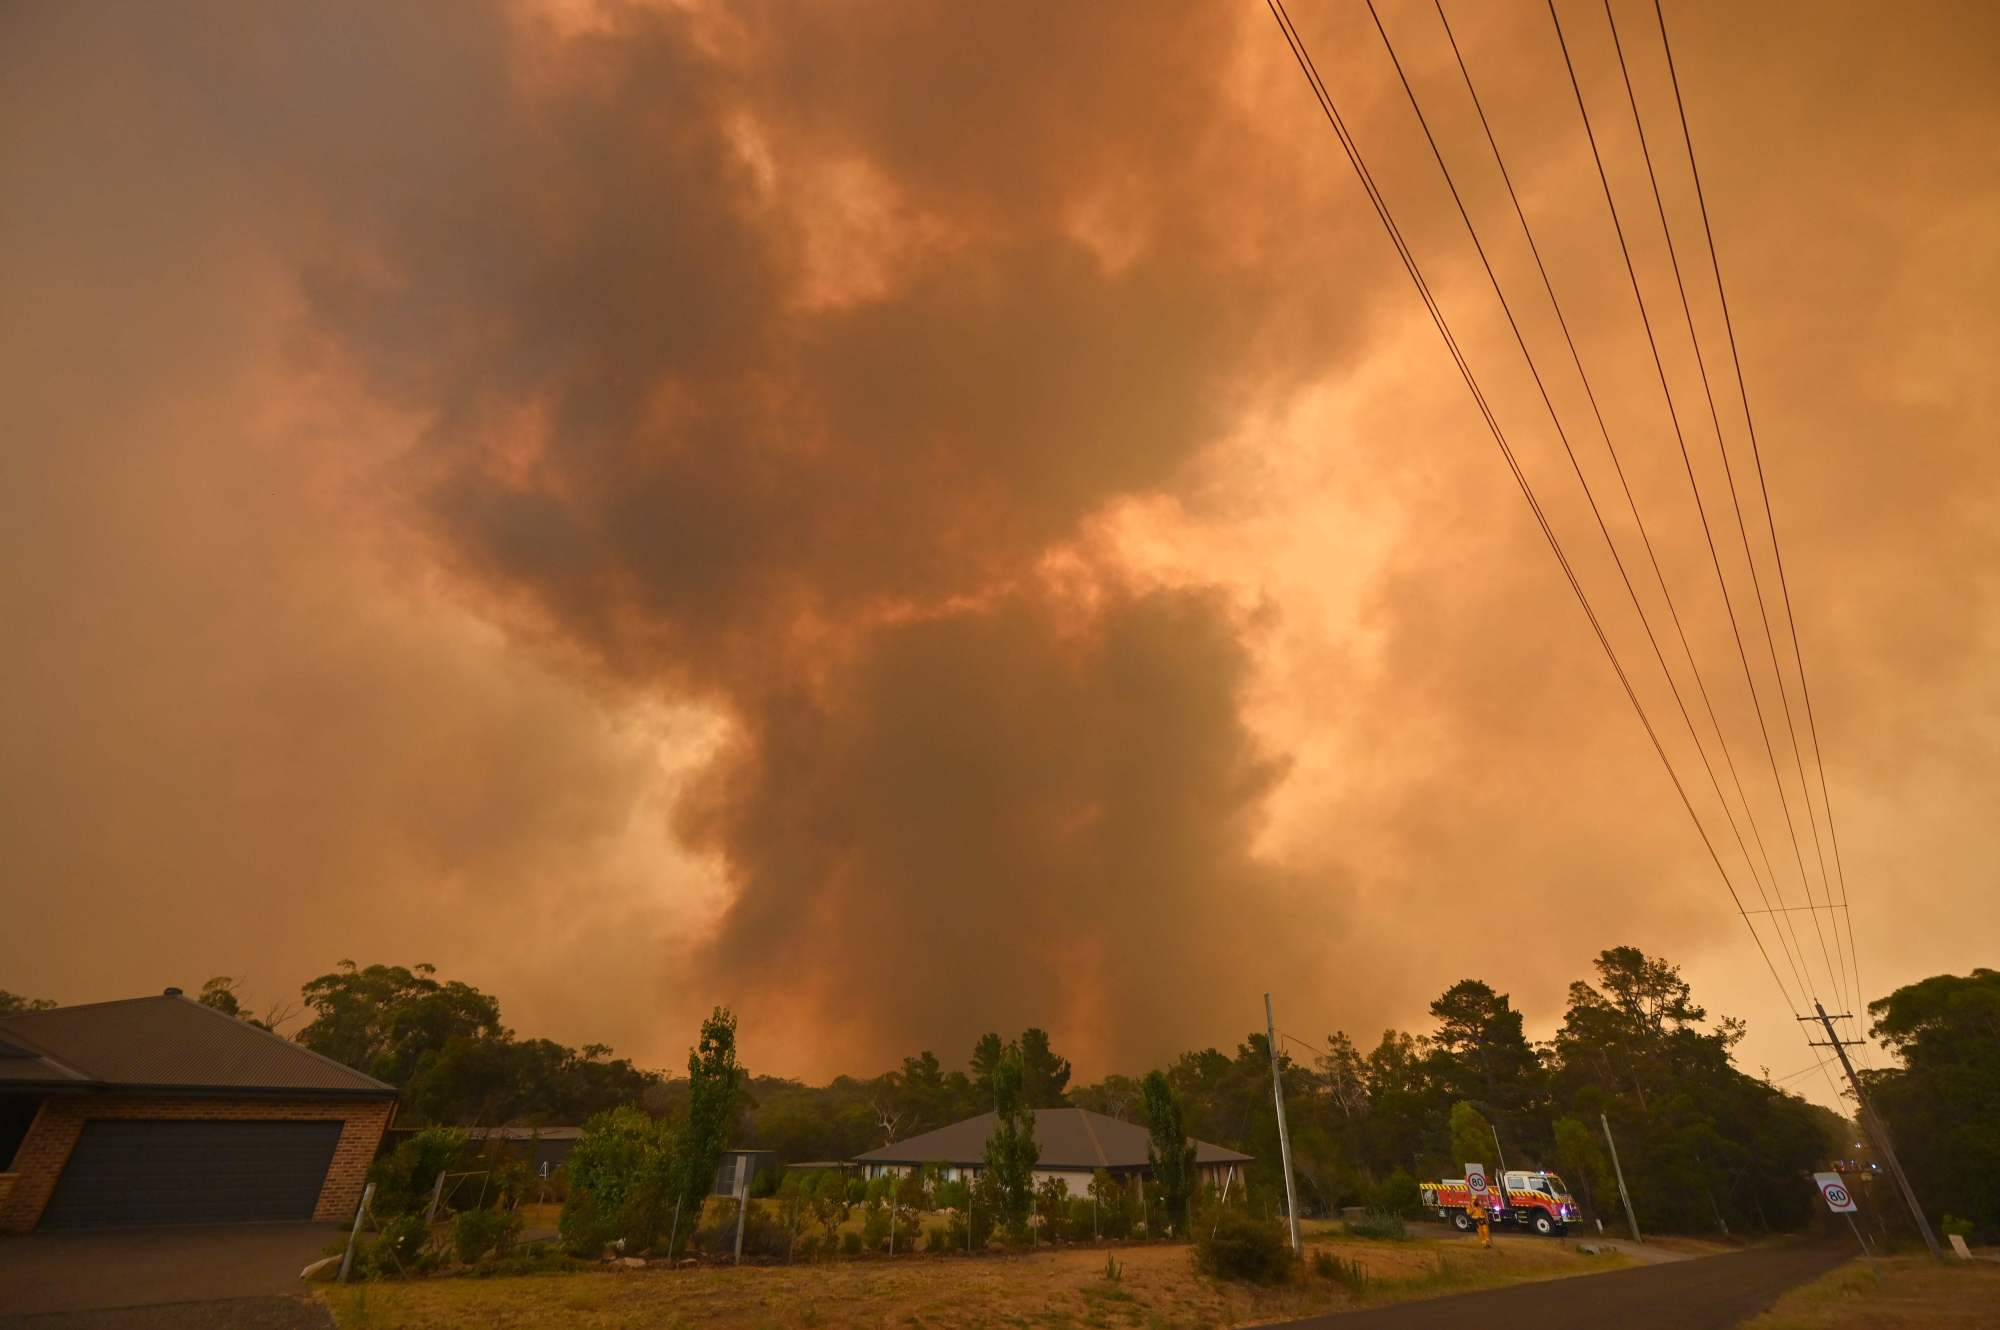 A large bushfire burns near houses in Bargo, southwest of Sydney, on Saturday. | AFP-JIJI